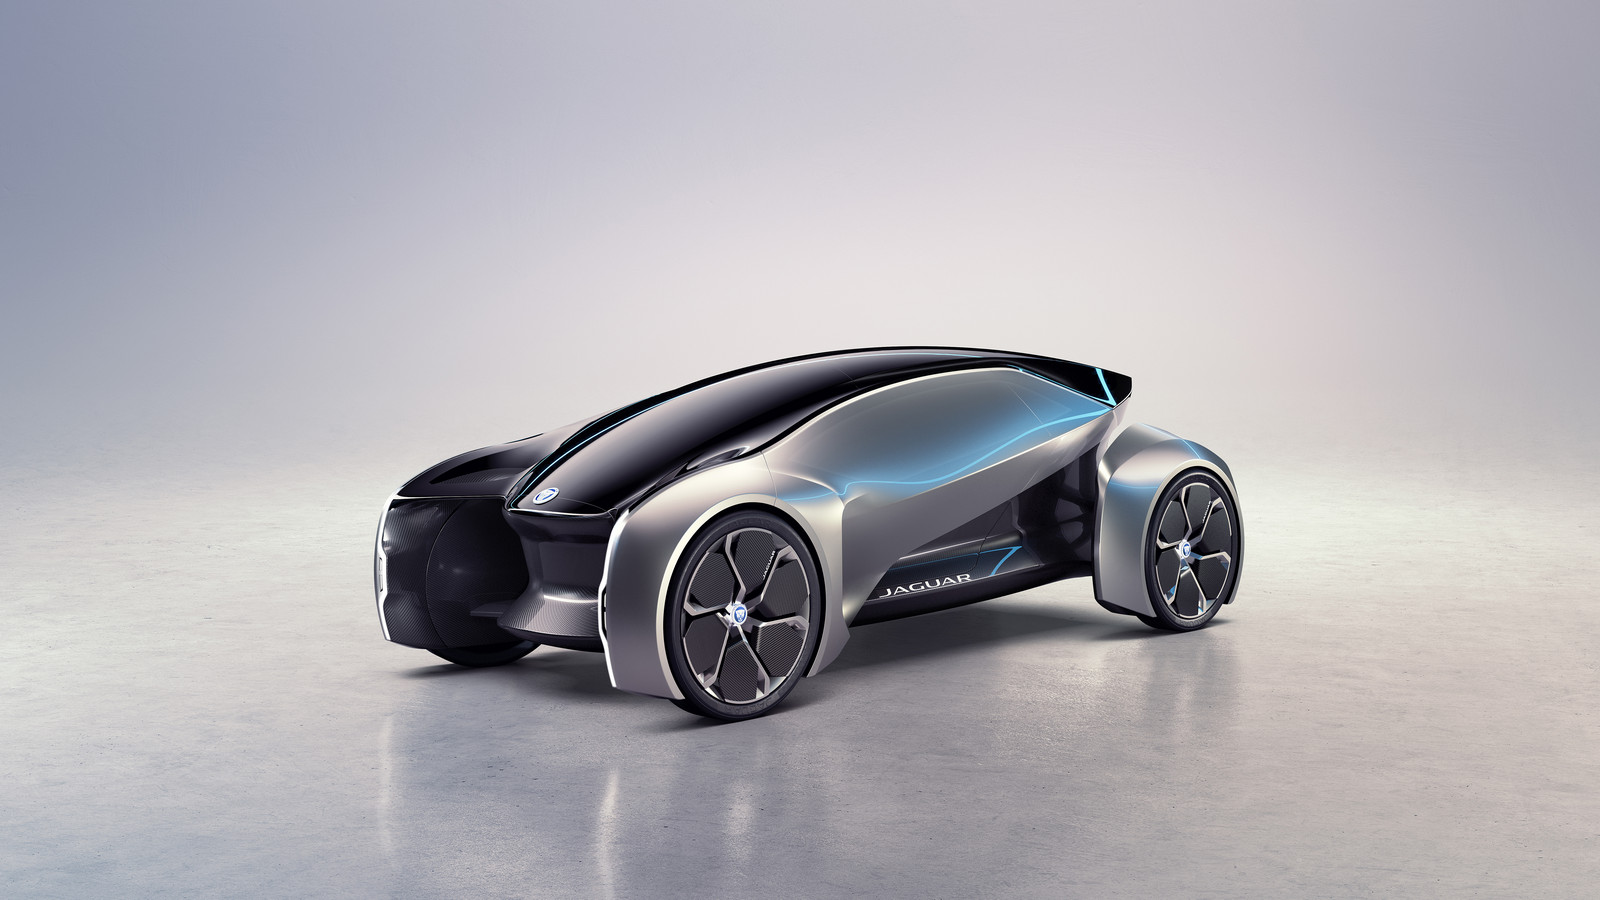 jaguar_future-type_concept